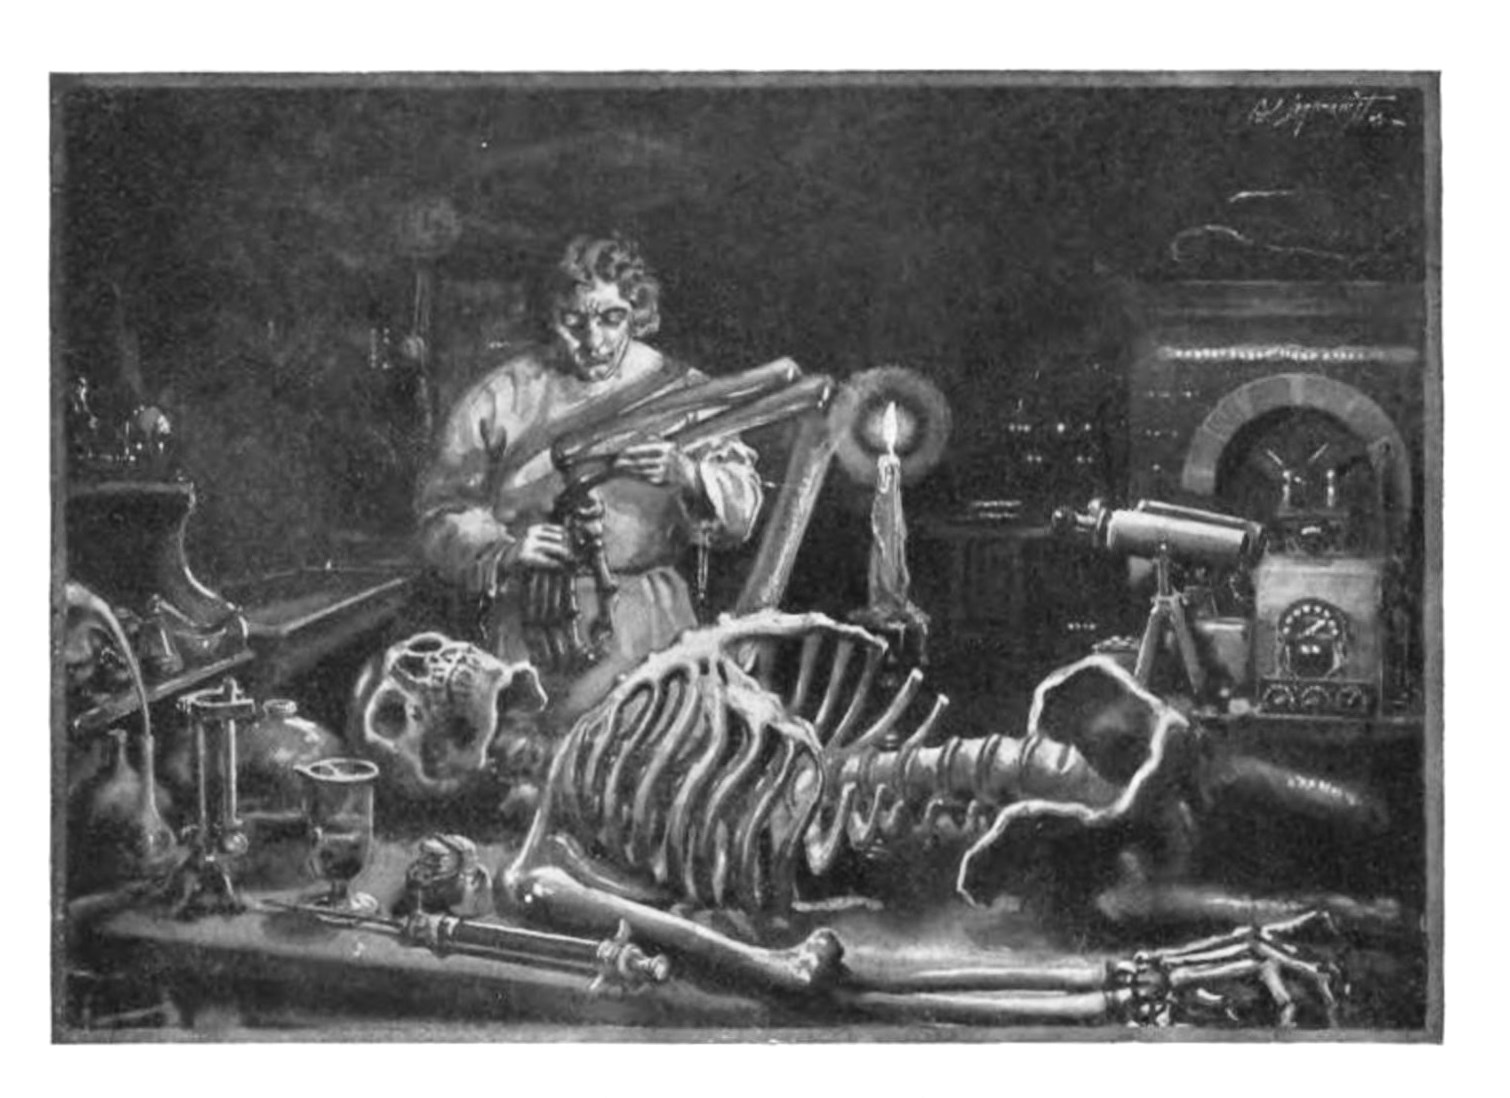 Mary Shelly's Frankenstein: or, The Modern Prometheus, one of the earliest examples of soft science fiction. Public Domain.